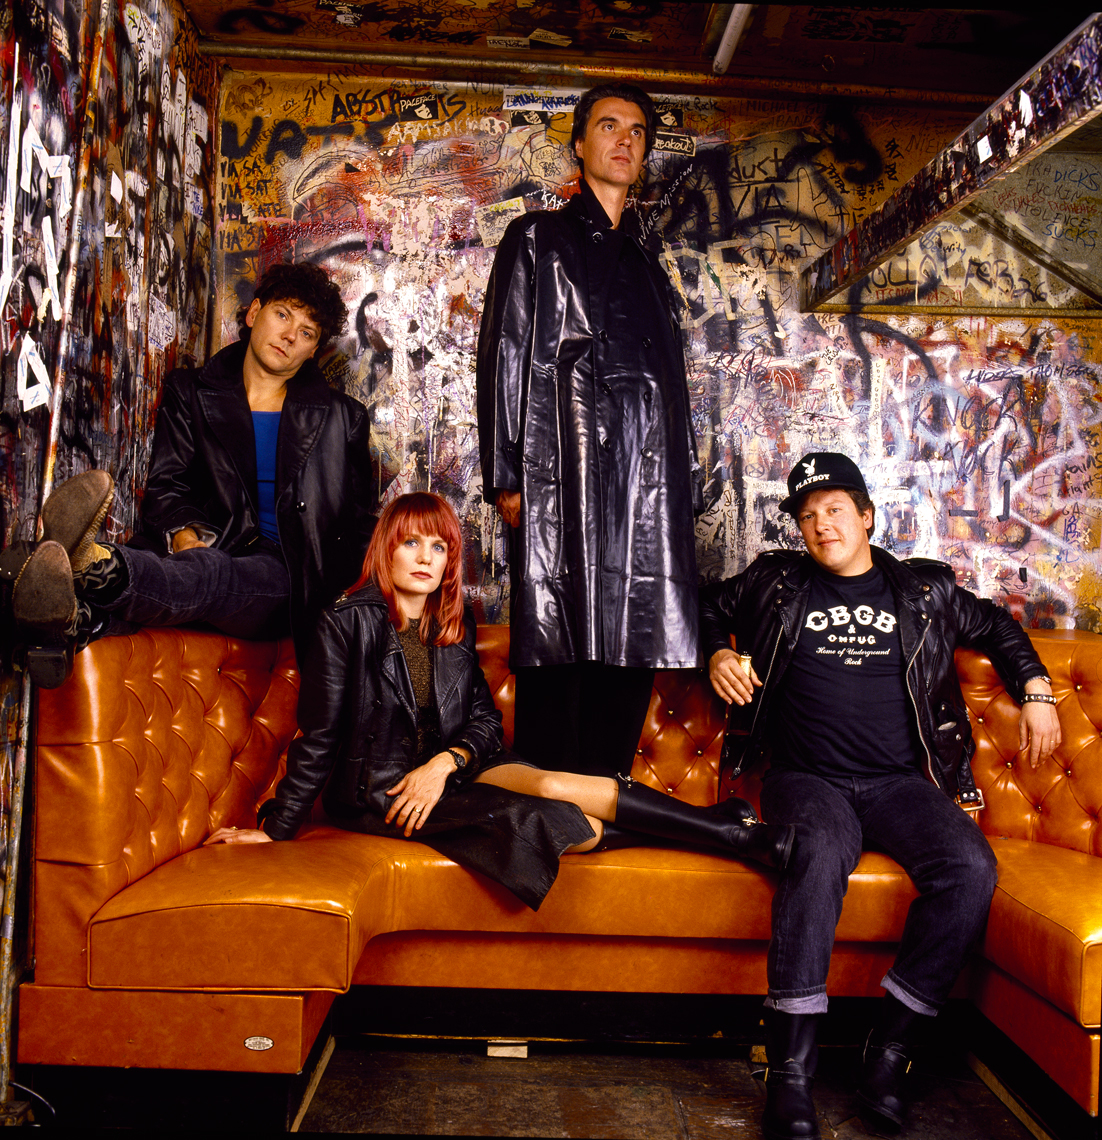 861201_RollingStones_TalkingHeads_bring_retouched.jpg